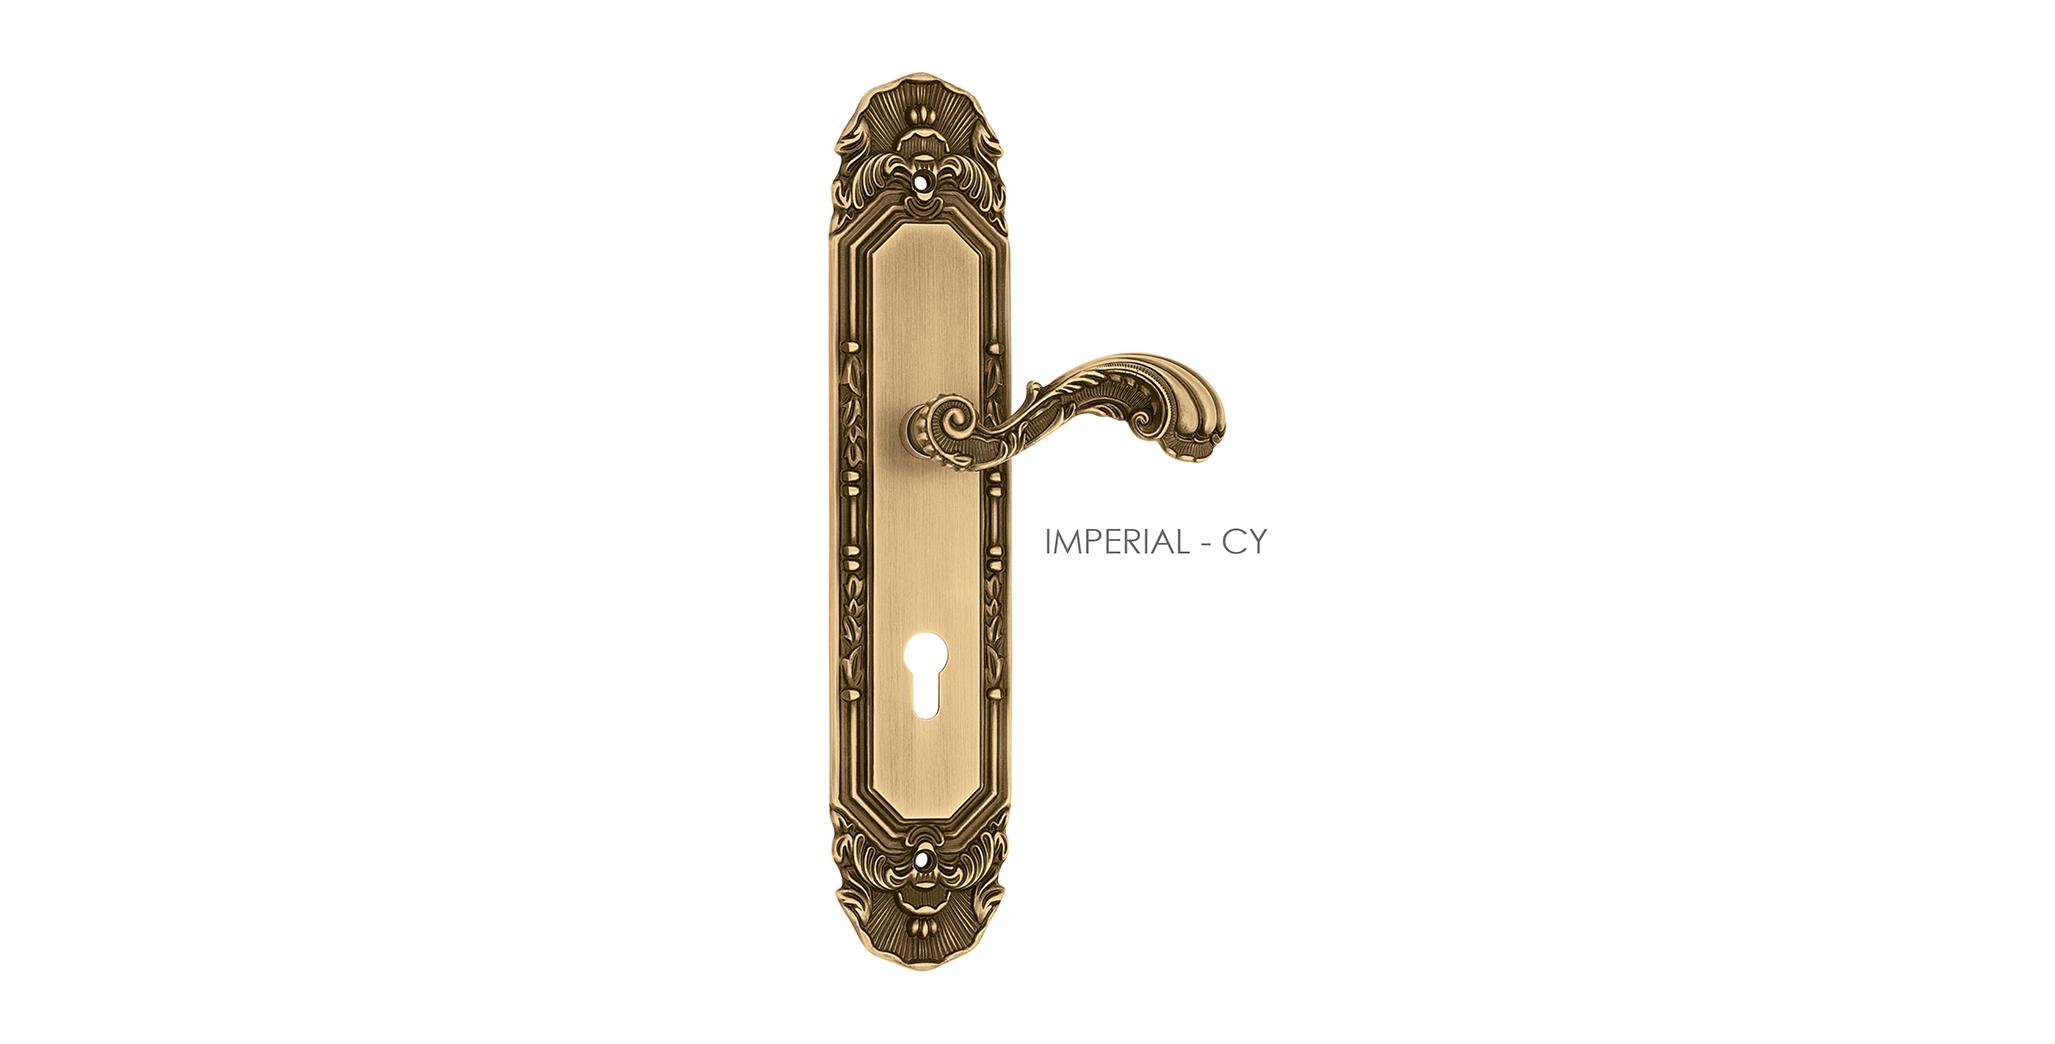 Beautiful Mortise Door Handle On Plate For Resorts